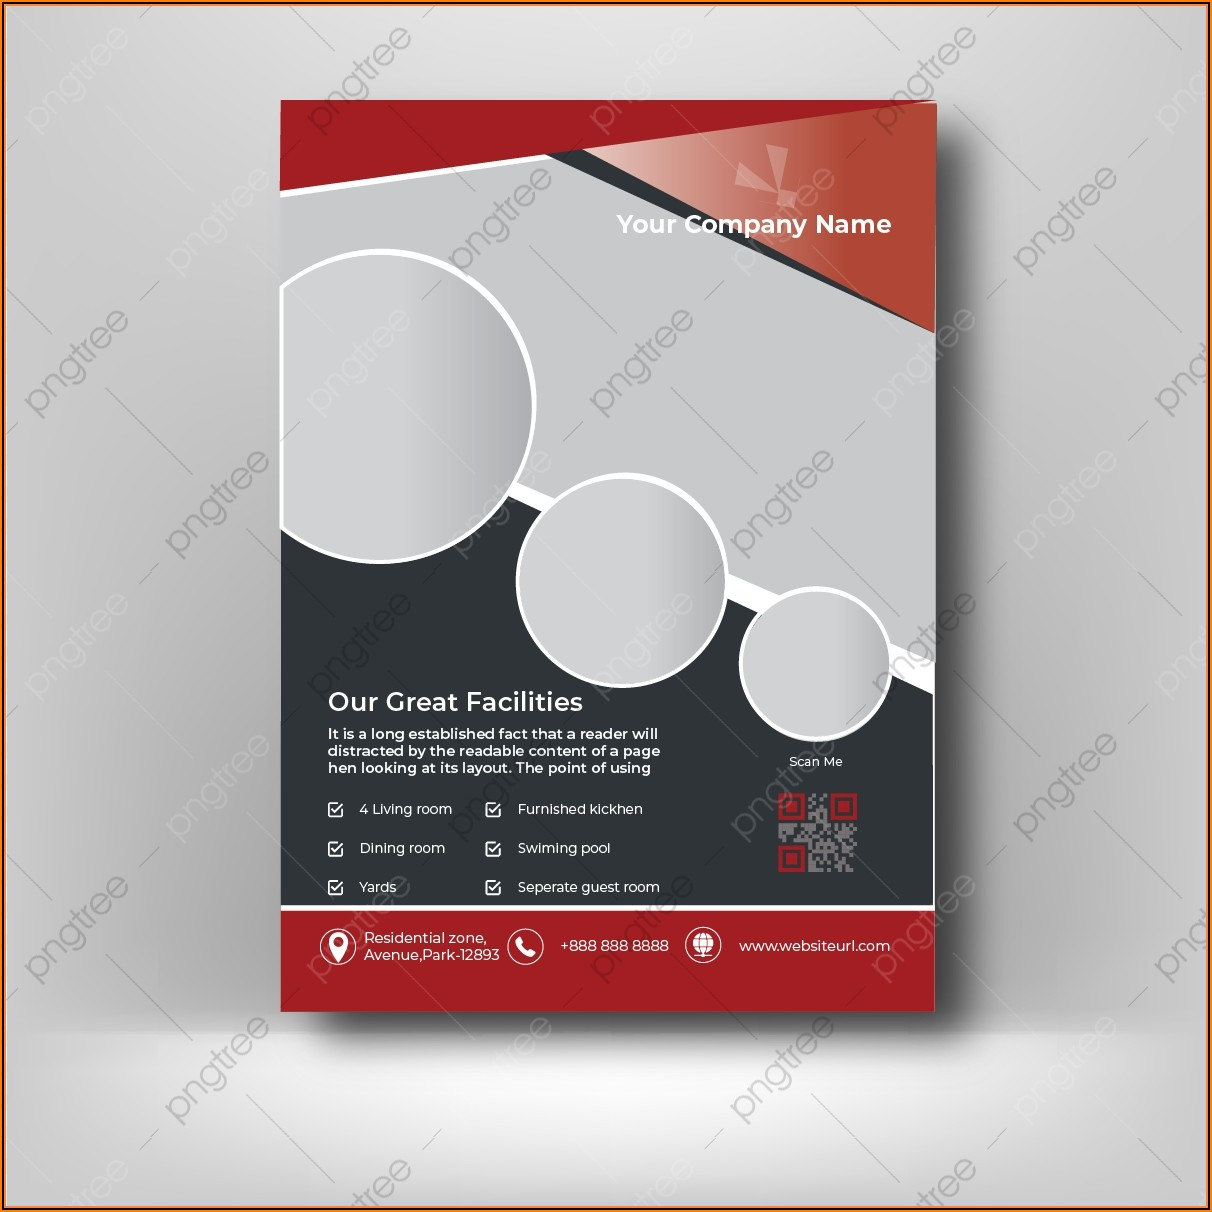 Free Template For Flyers Design